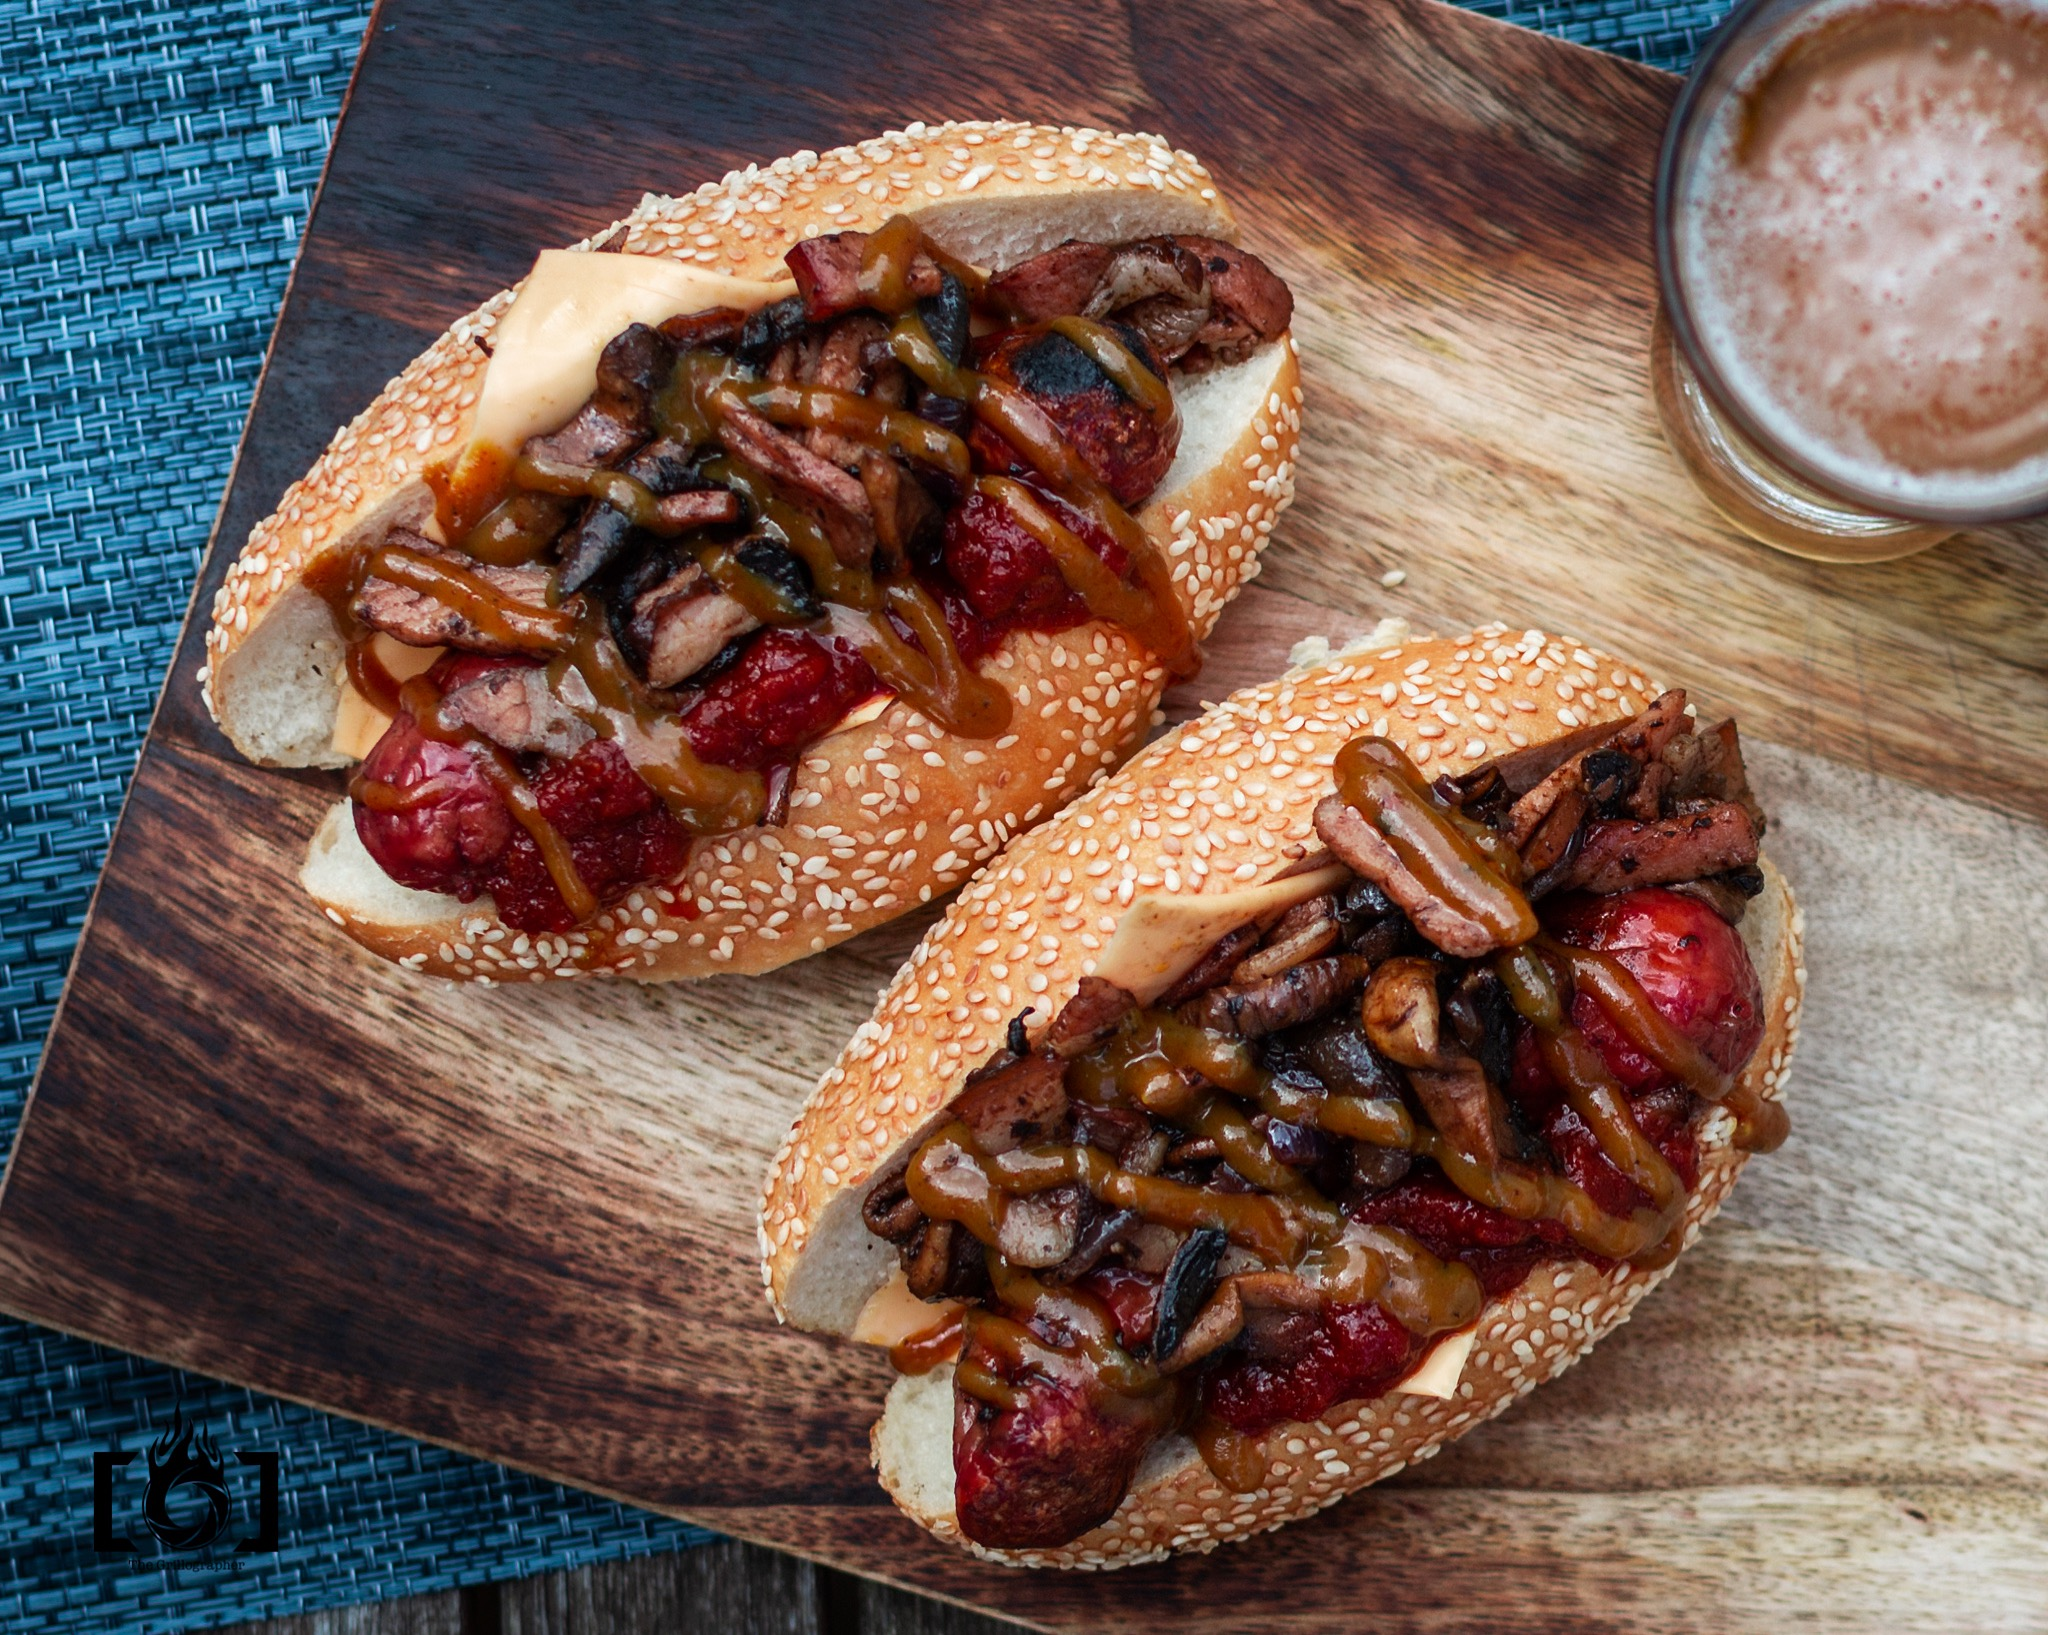 Beef bacon and mushroom dogs